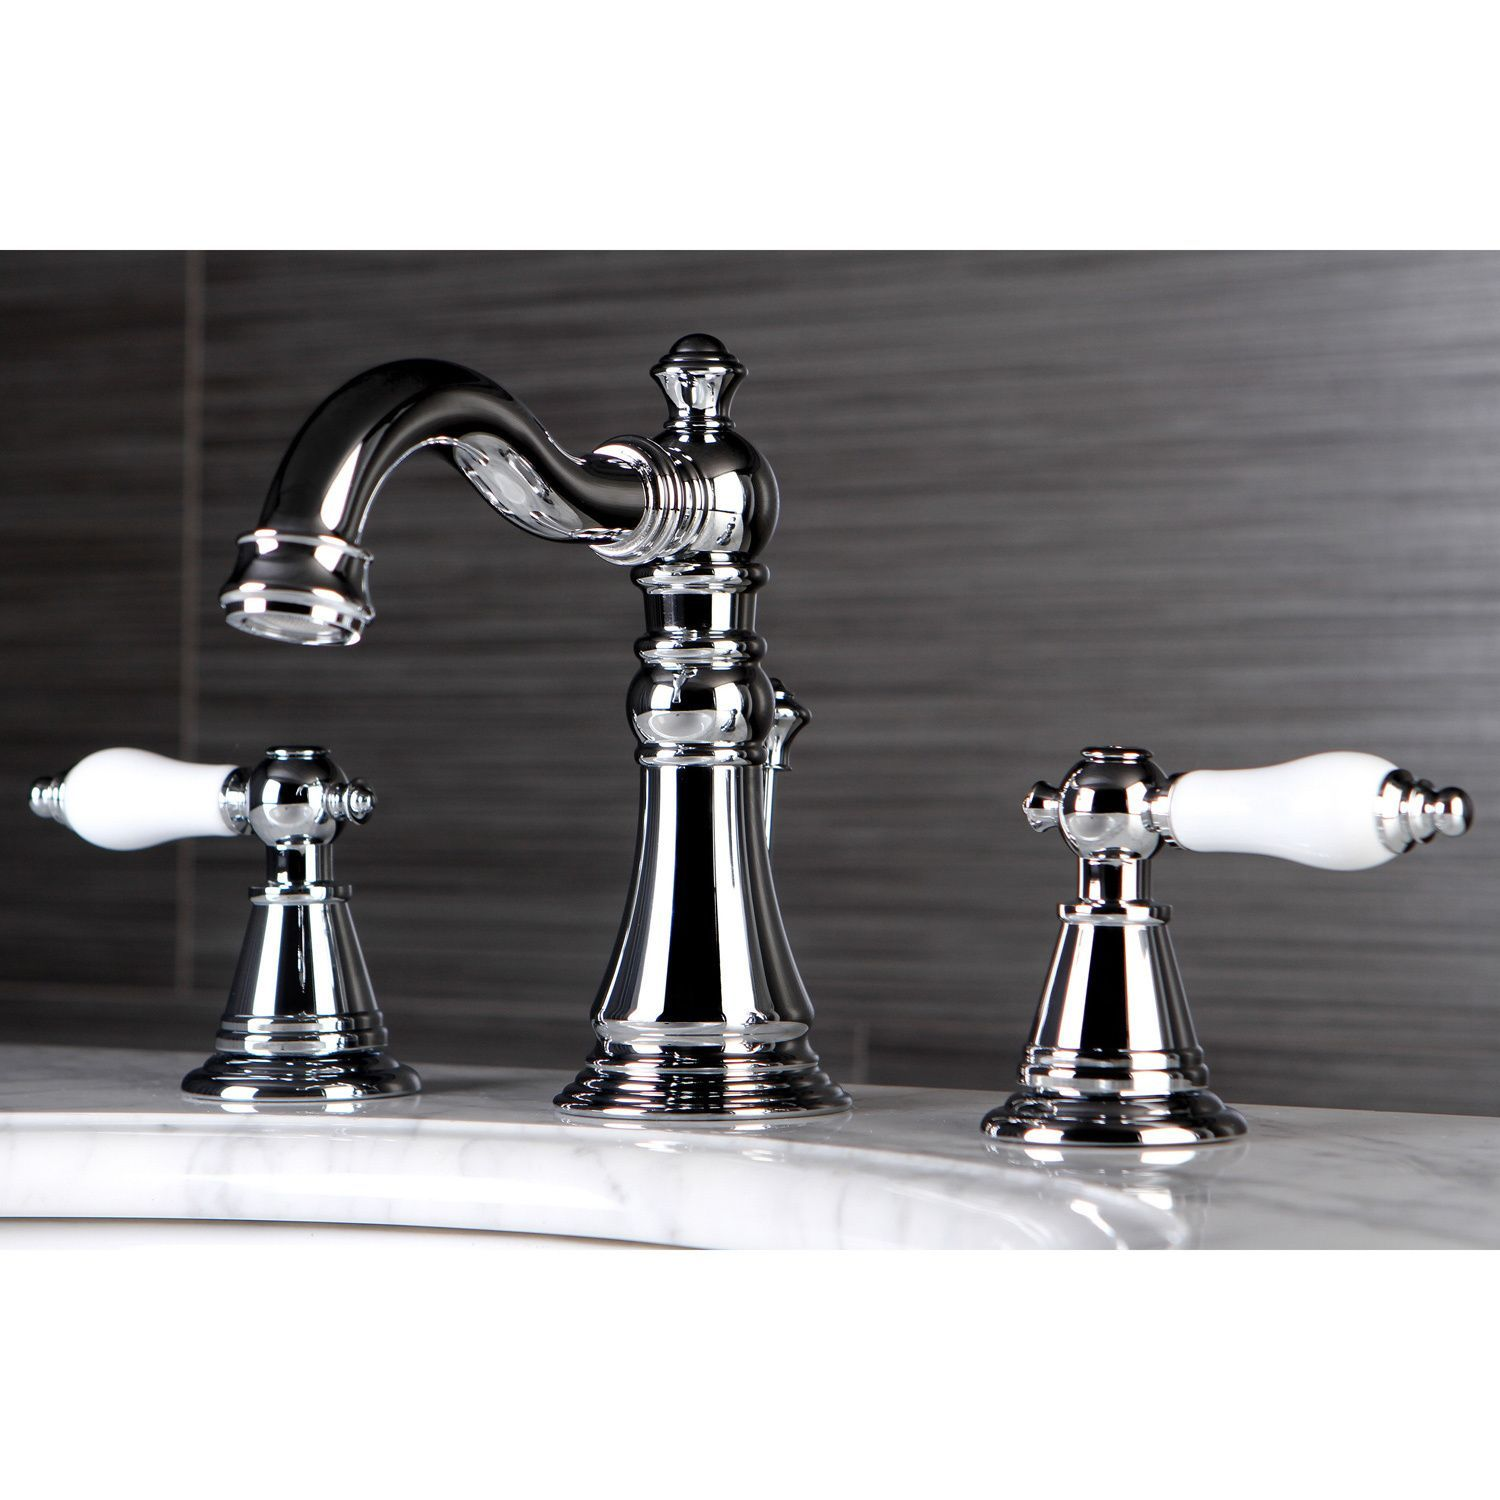 Classic Widespread Chrome Bathroom Faucet - Overstock Shopping ...